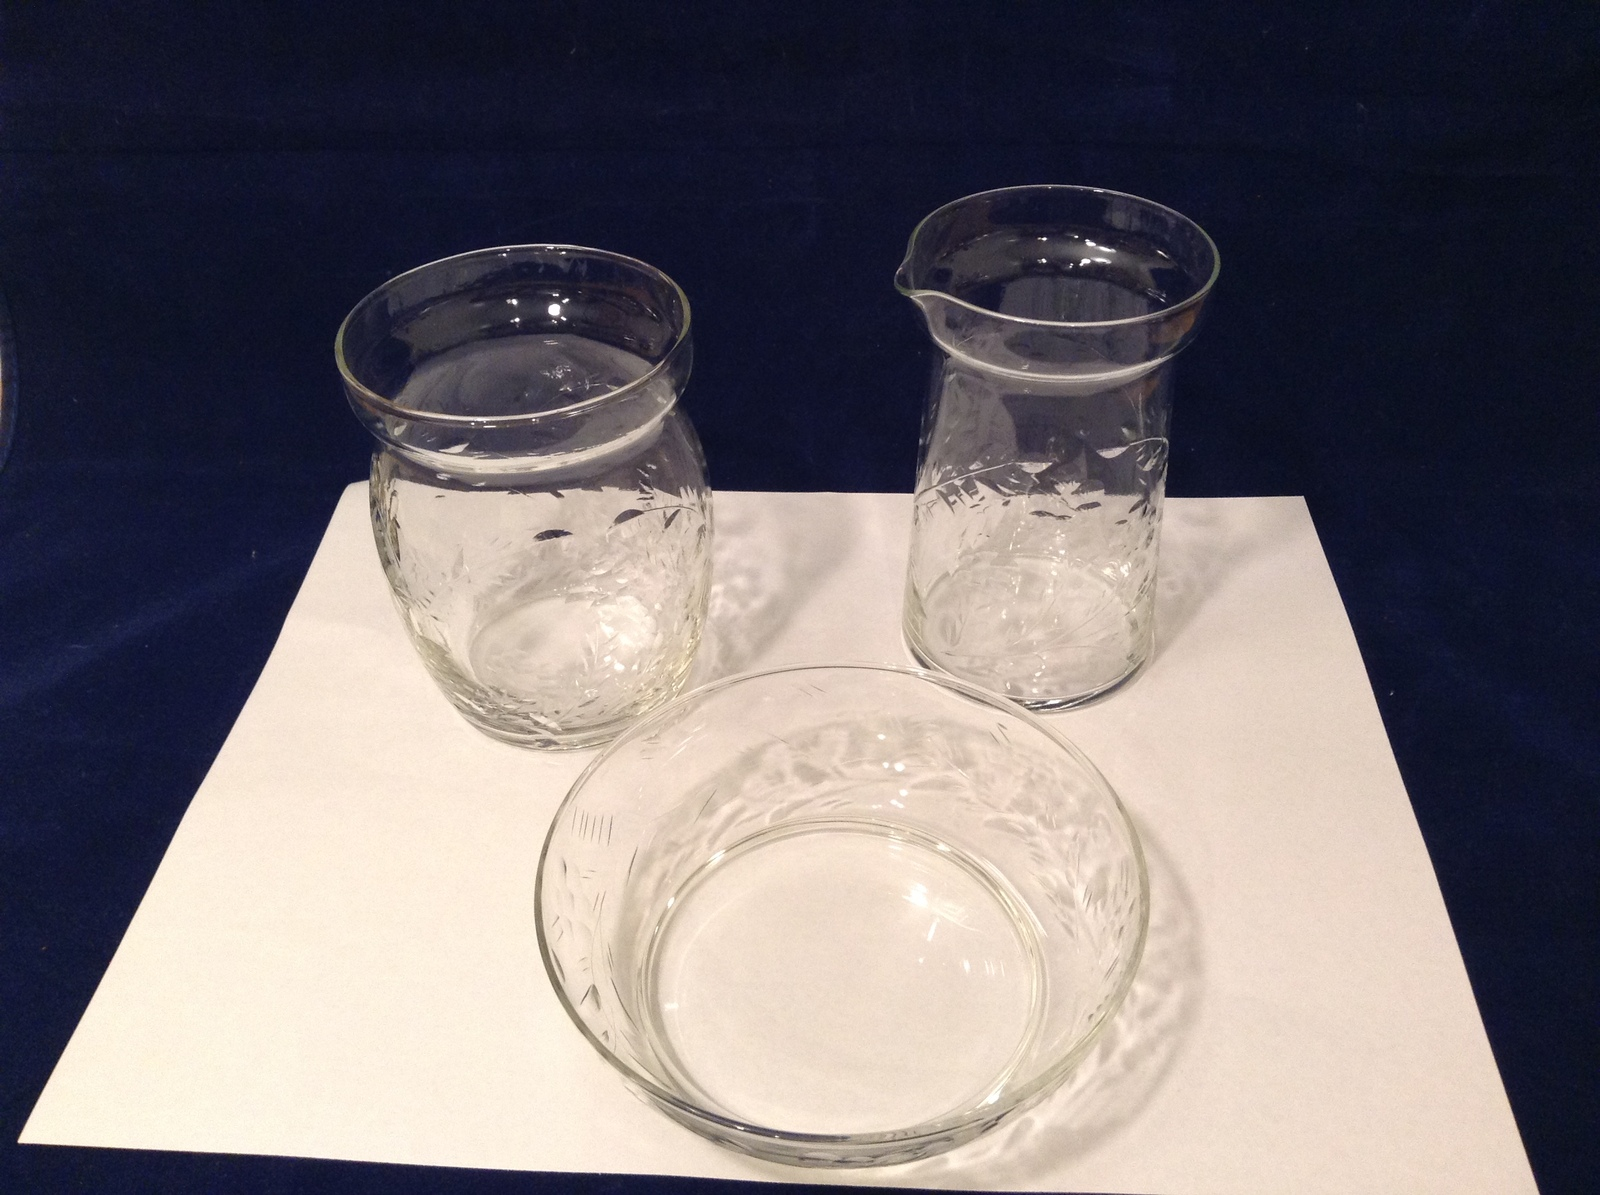 Vintage Thin Glass 3 Pieces set: Creamer, Sugar Bowl (or vase), Candy Dish